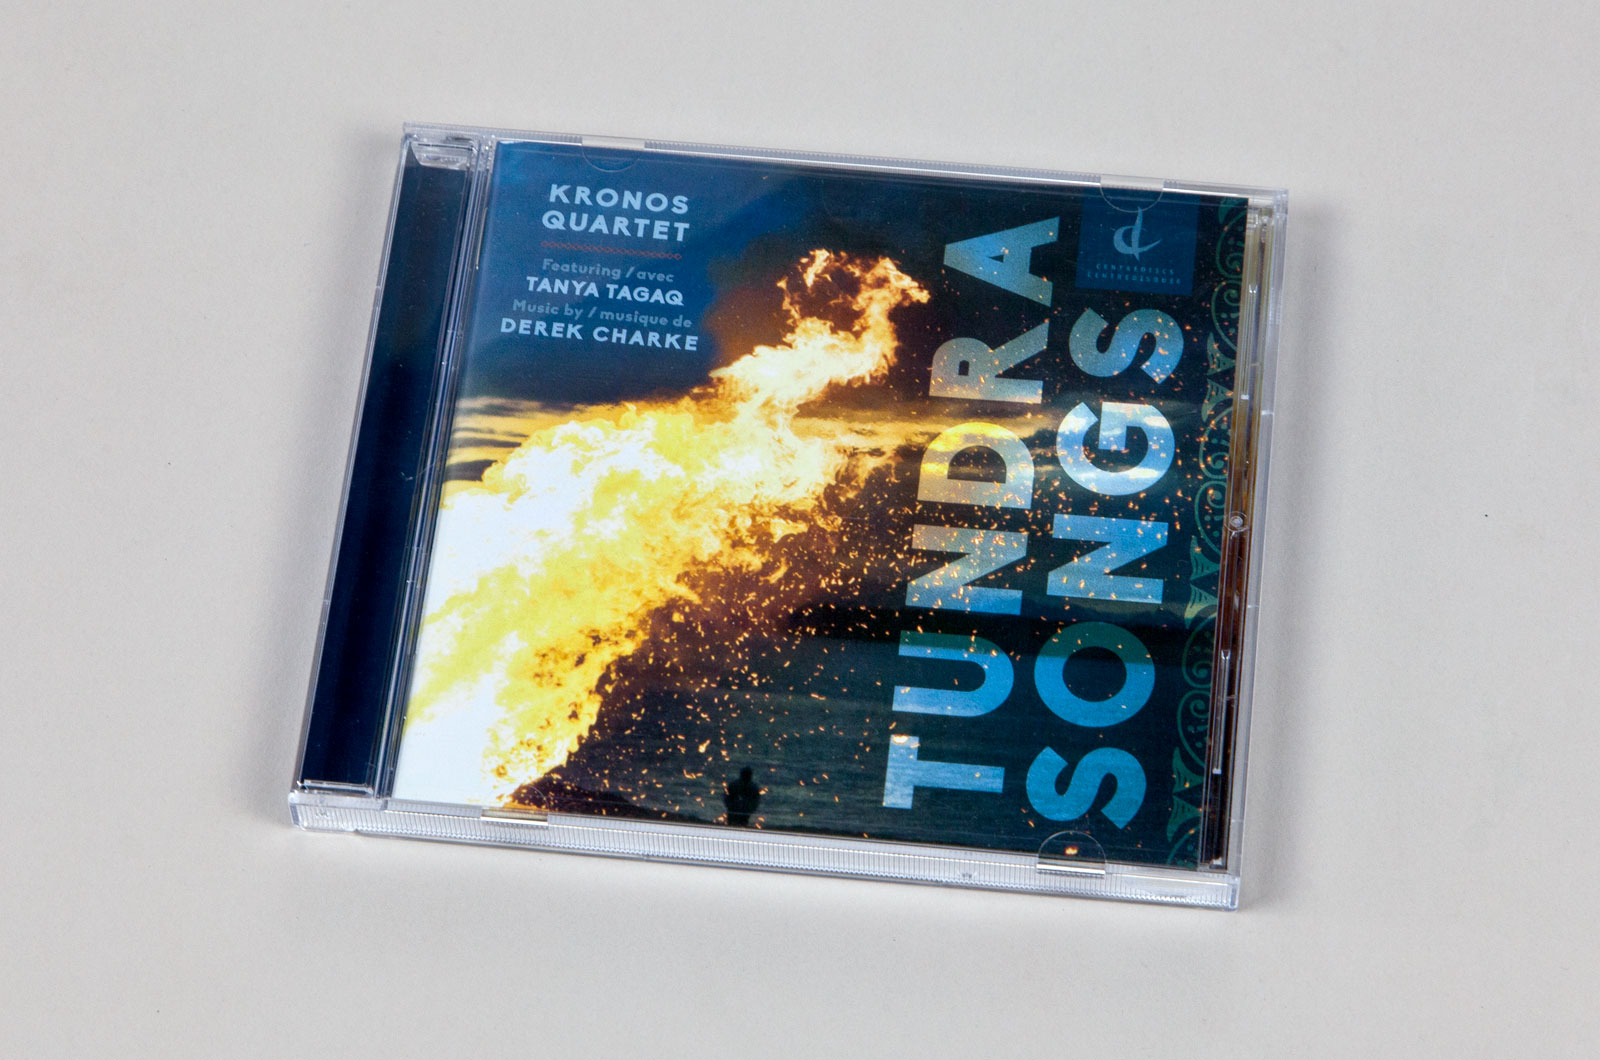 CD Packaging Image